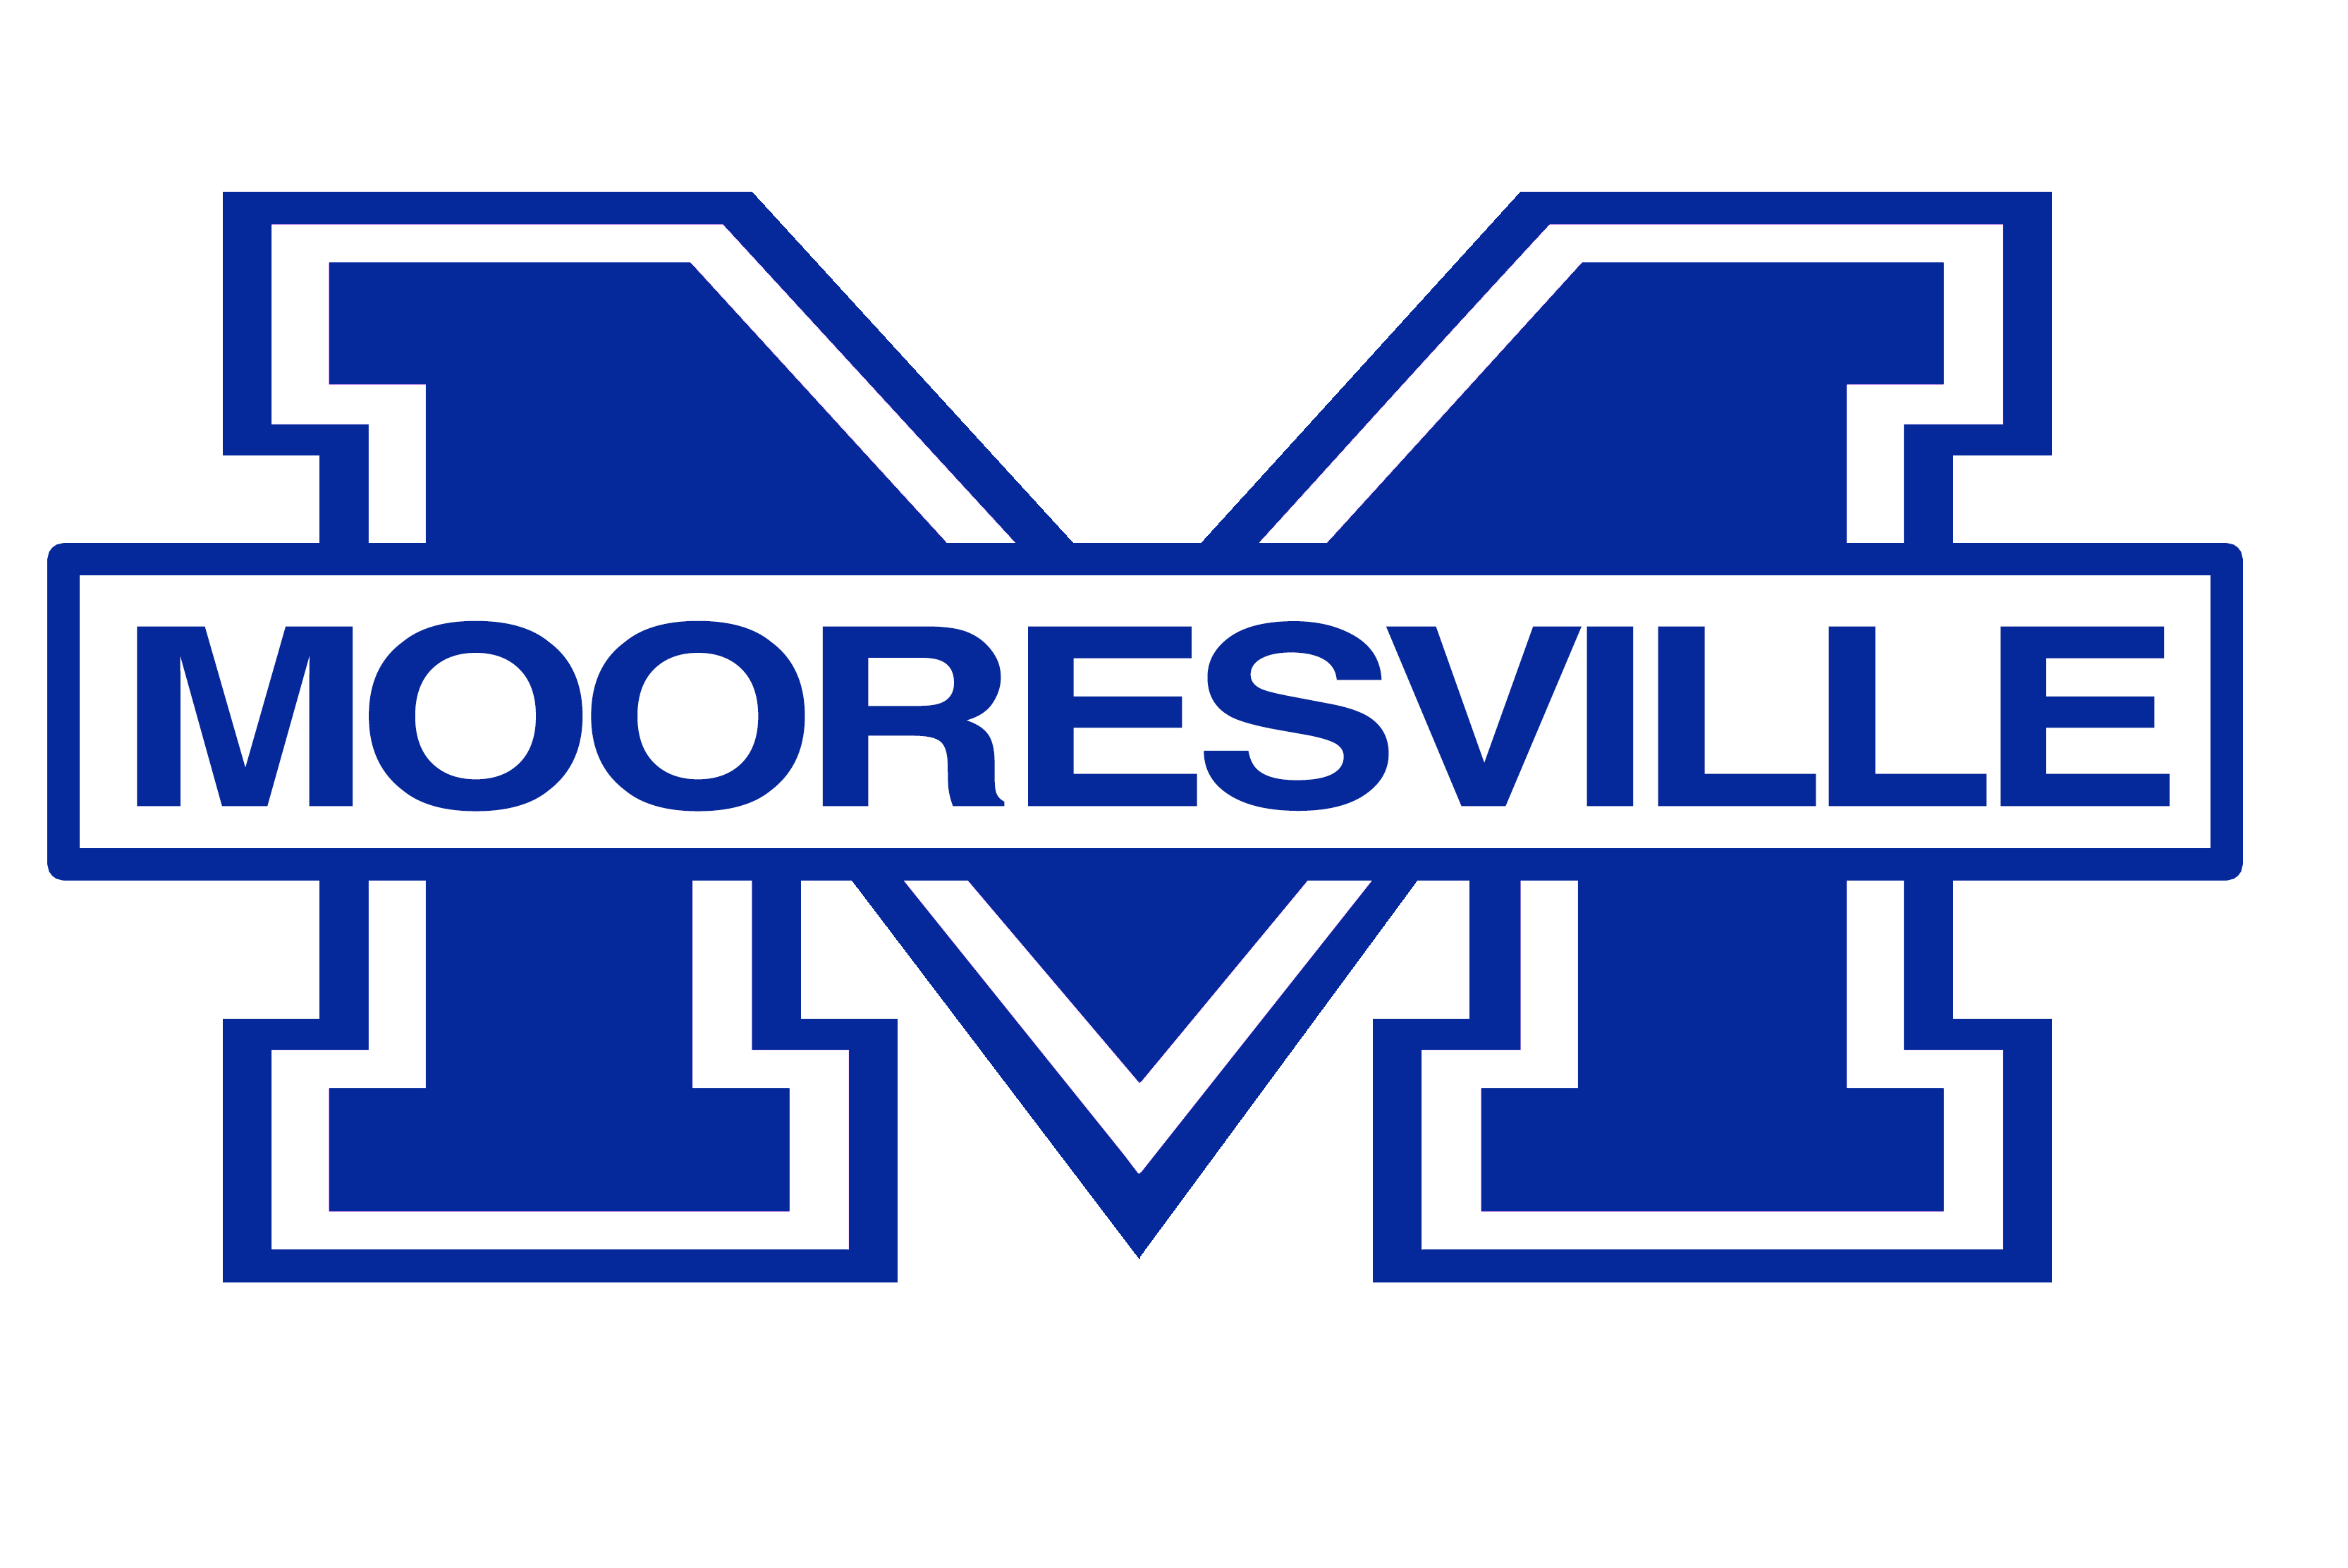 Mooresville graded school district mooresville high school mooresville senior high school 1betcityfo Choice Image